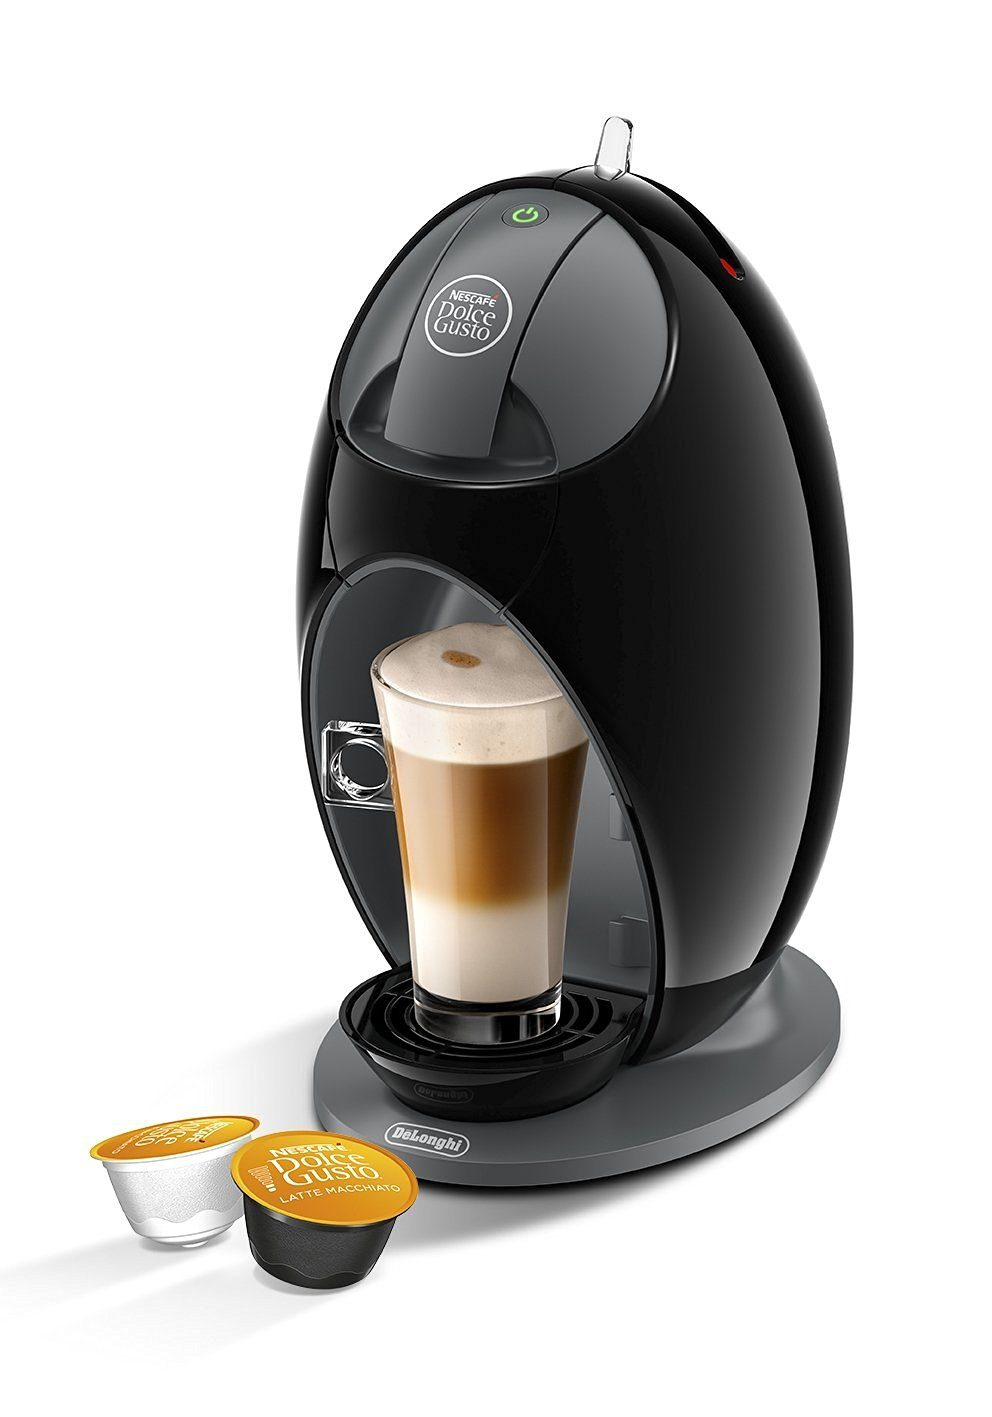 Best Coffee Maker For Pods : Best Pod Capsule Coffee Maker Reviews UK 2018The Perfect Grind